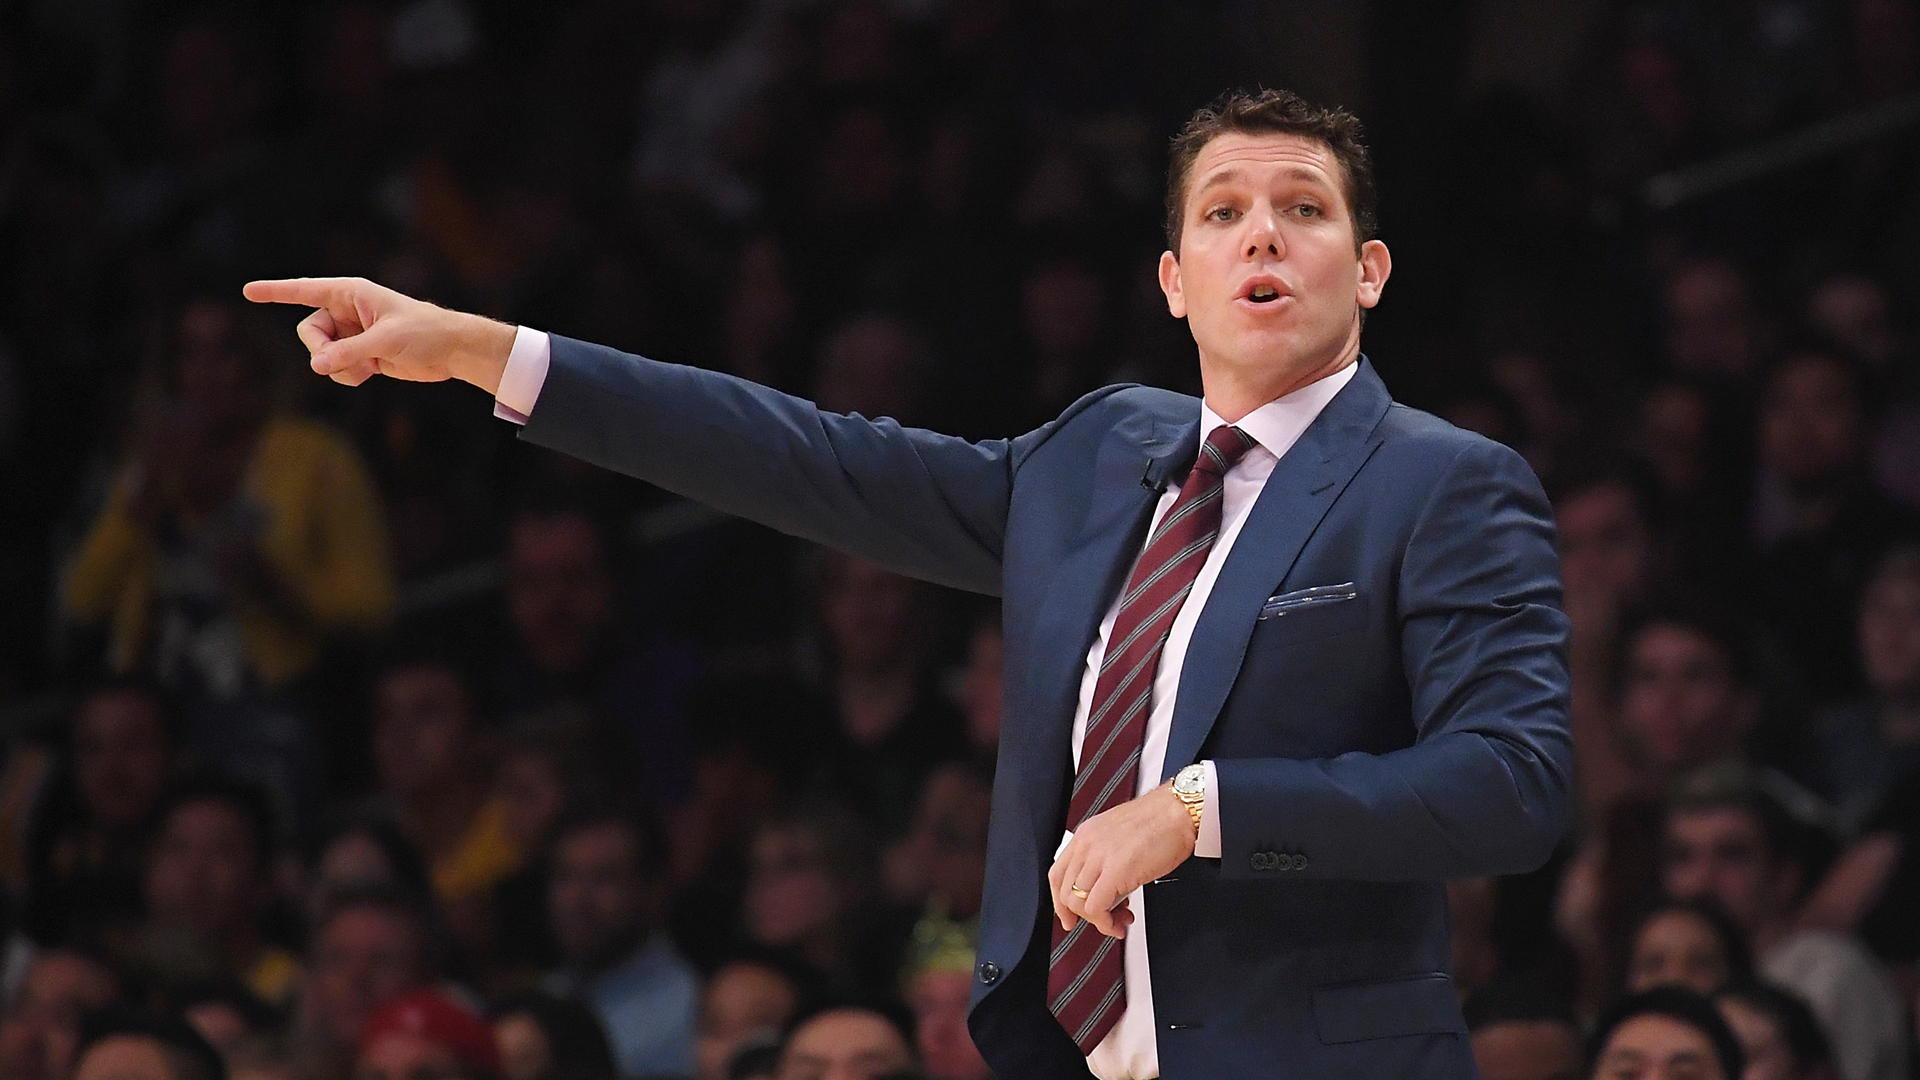 Head coach Luke Walton of the L.A. Lakers gestures during the first quarter against the Houston Rockets at Staples Center on October 20, 2018 in Los Angeles. (Credit: Harry How/Getty Images)